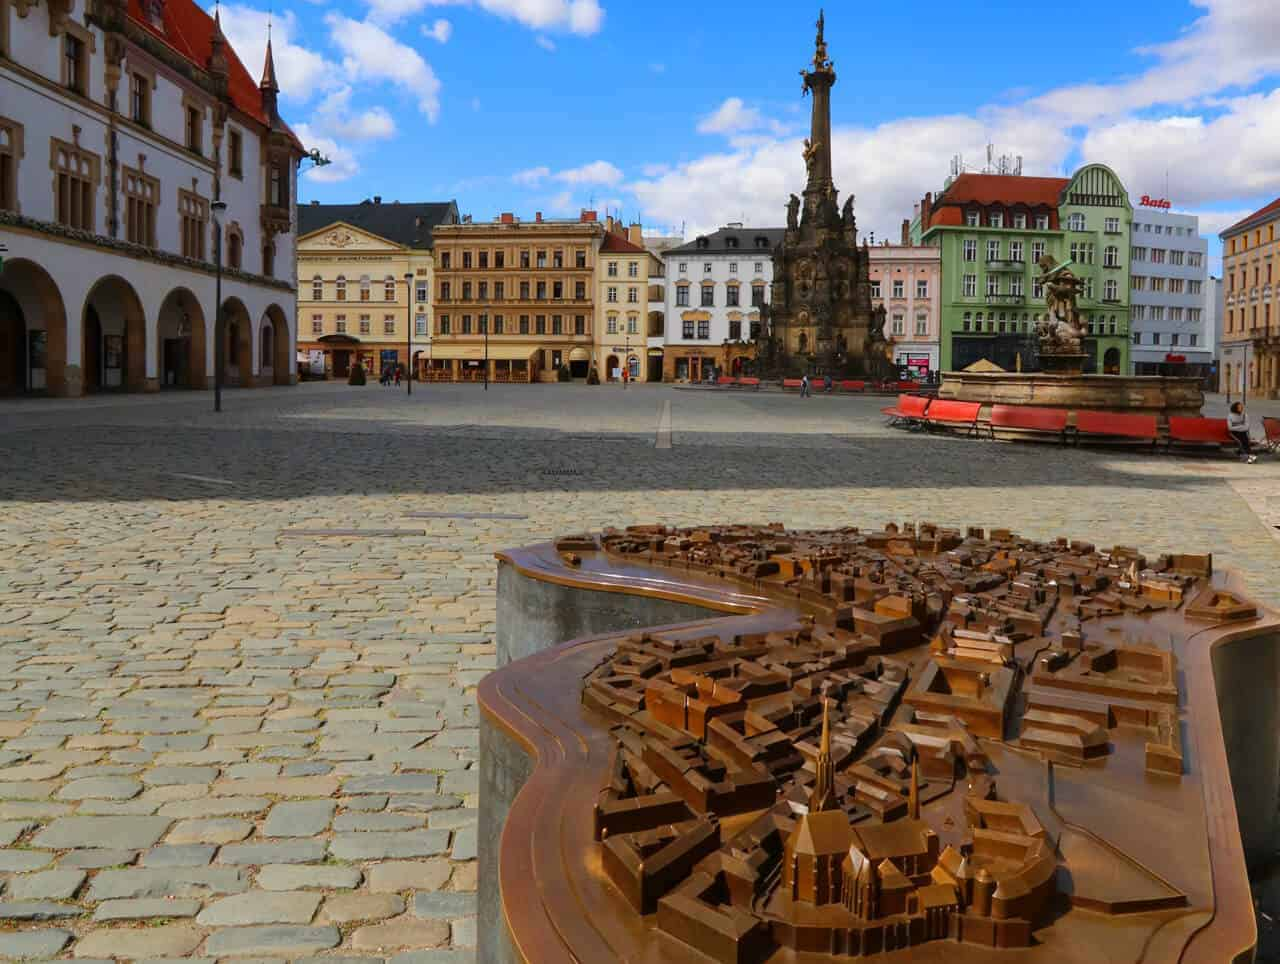 Olomouc. 12 surprising places to see that you may never have heard of